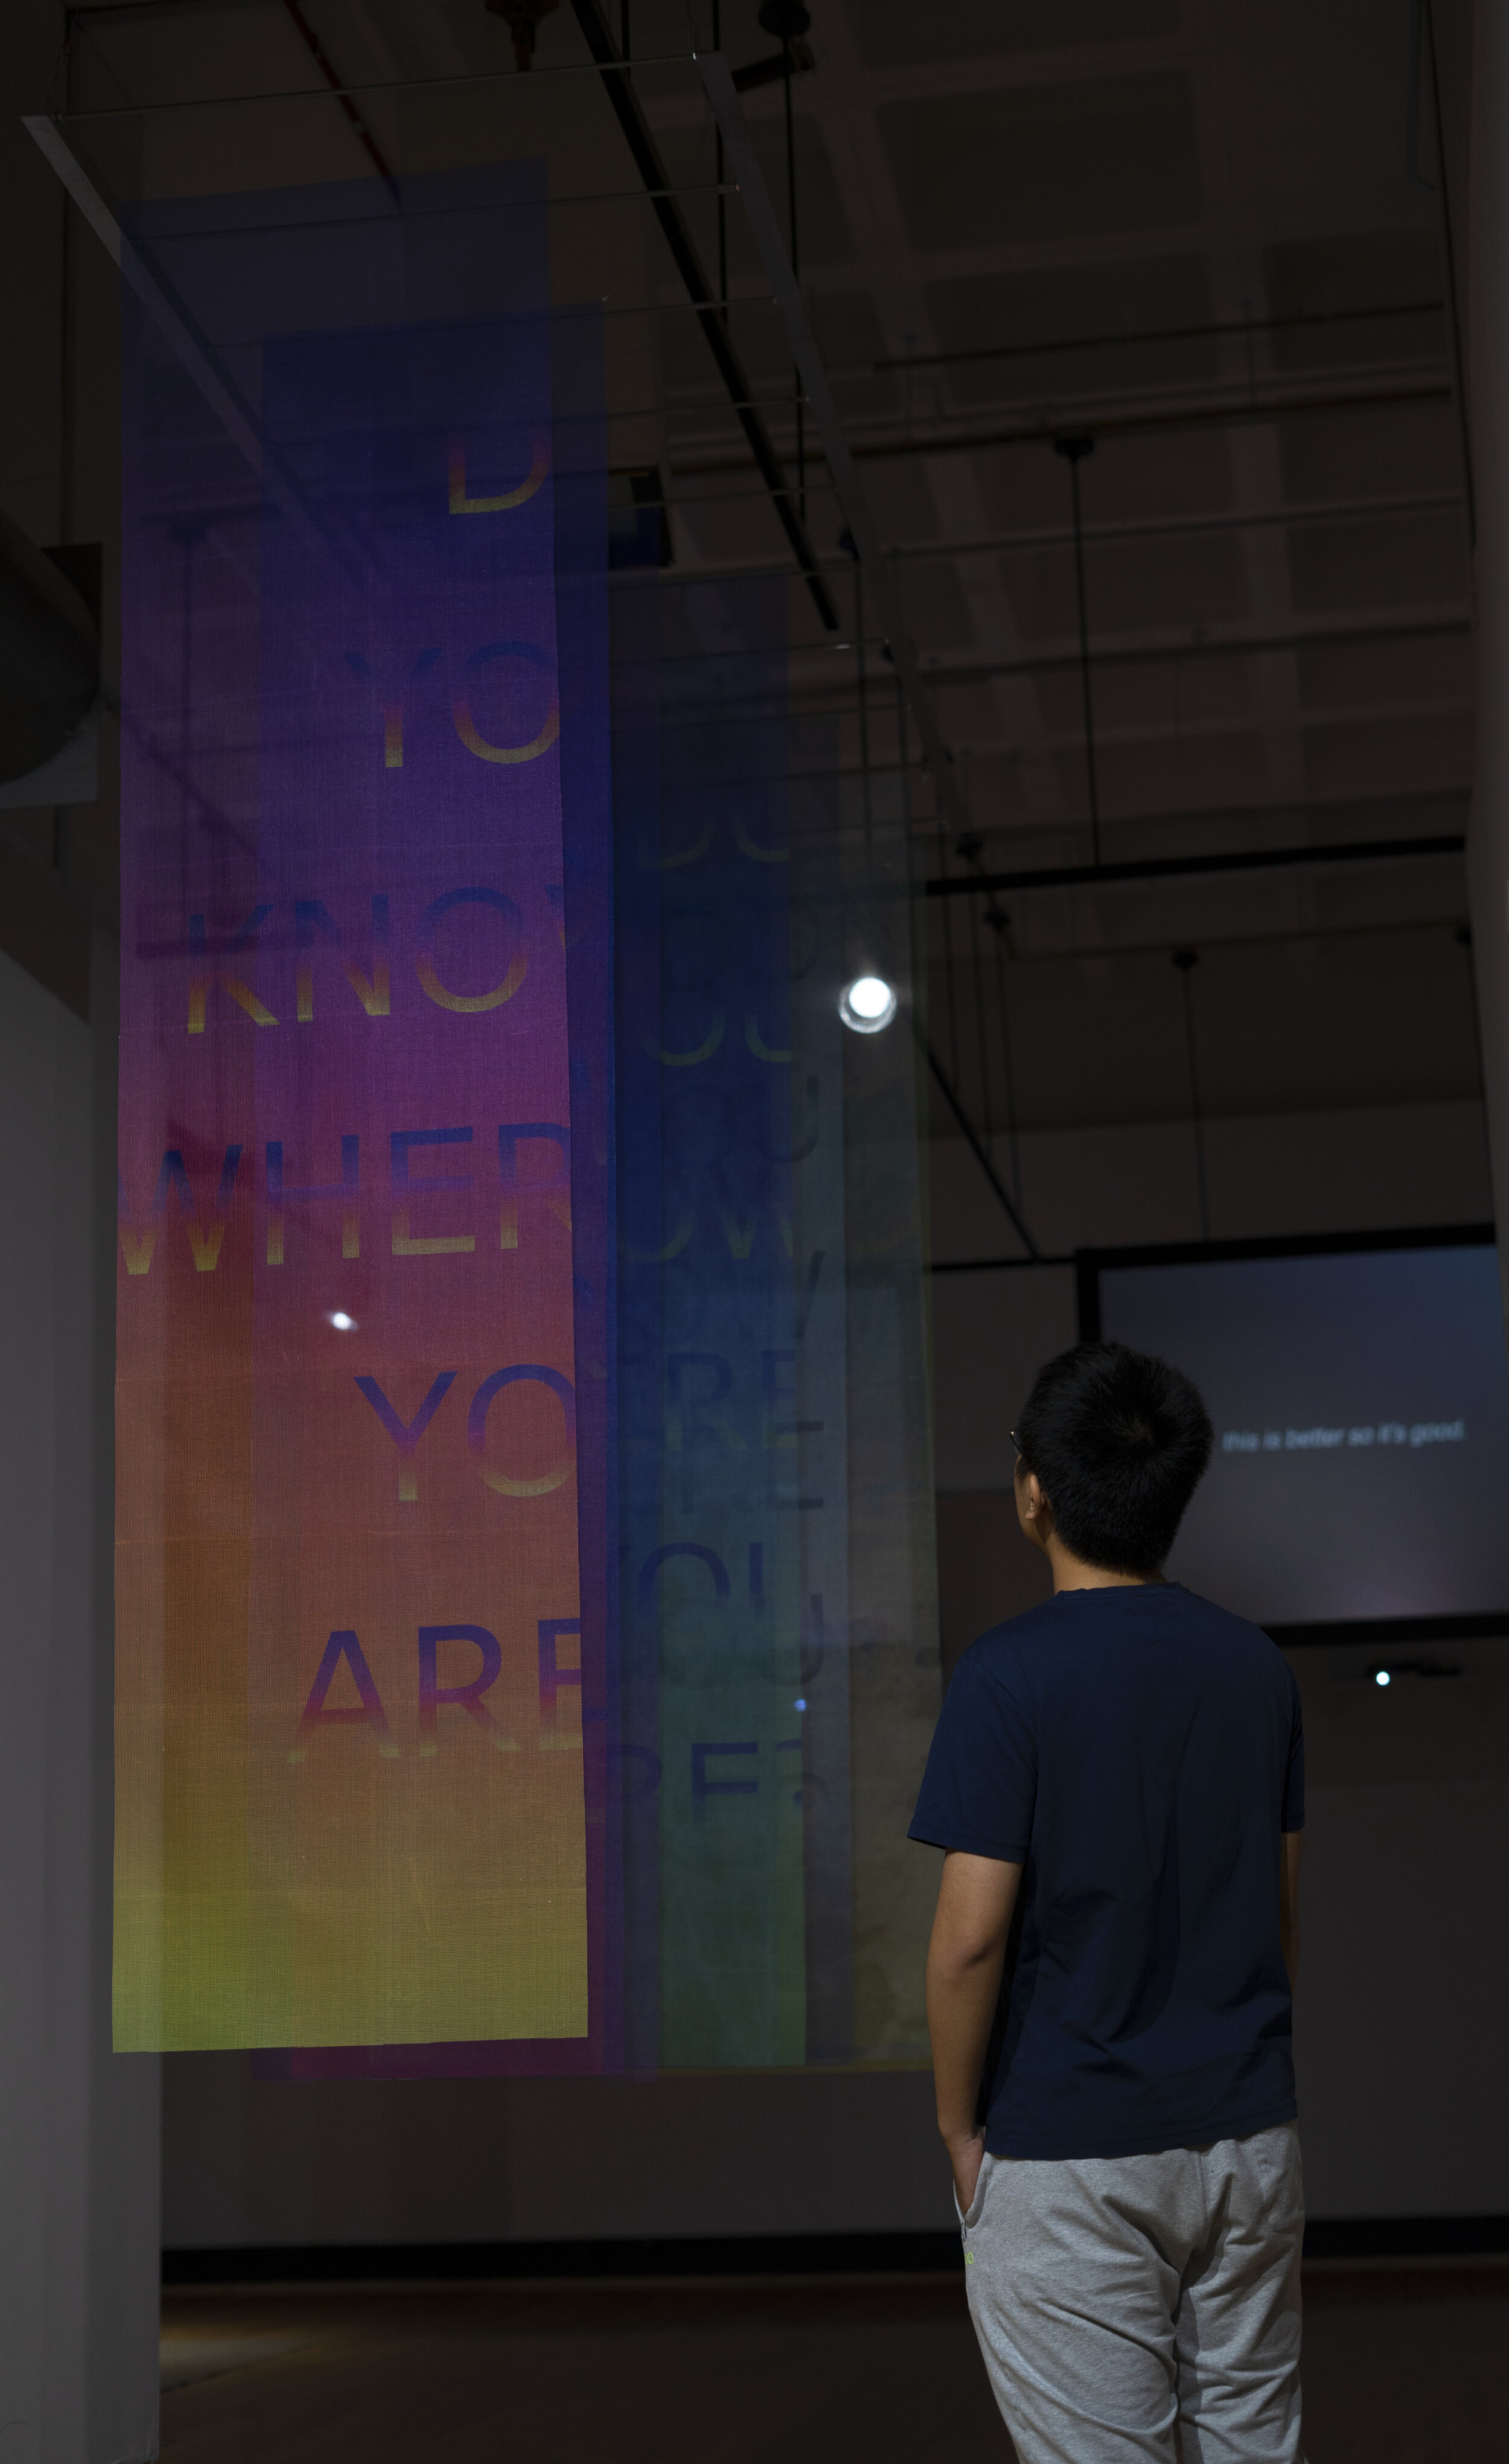 Do You Know Where You Are?  (Installation view). UV print on fiberglass screens. 96in x 36in x 120in. 2019